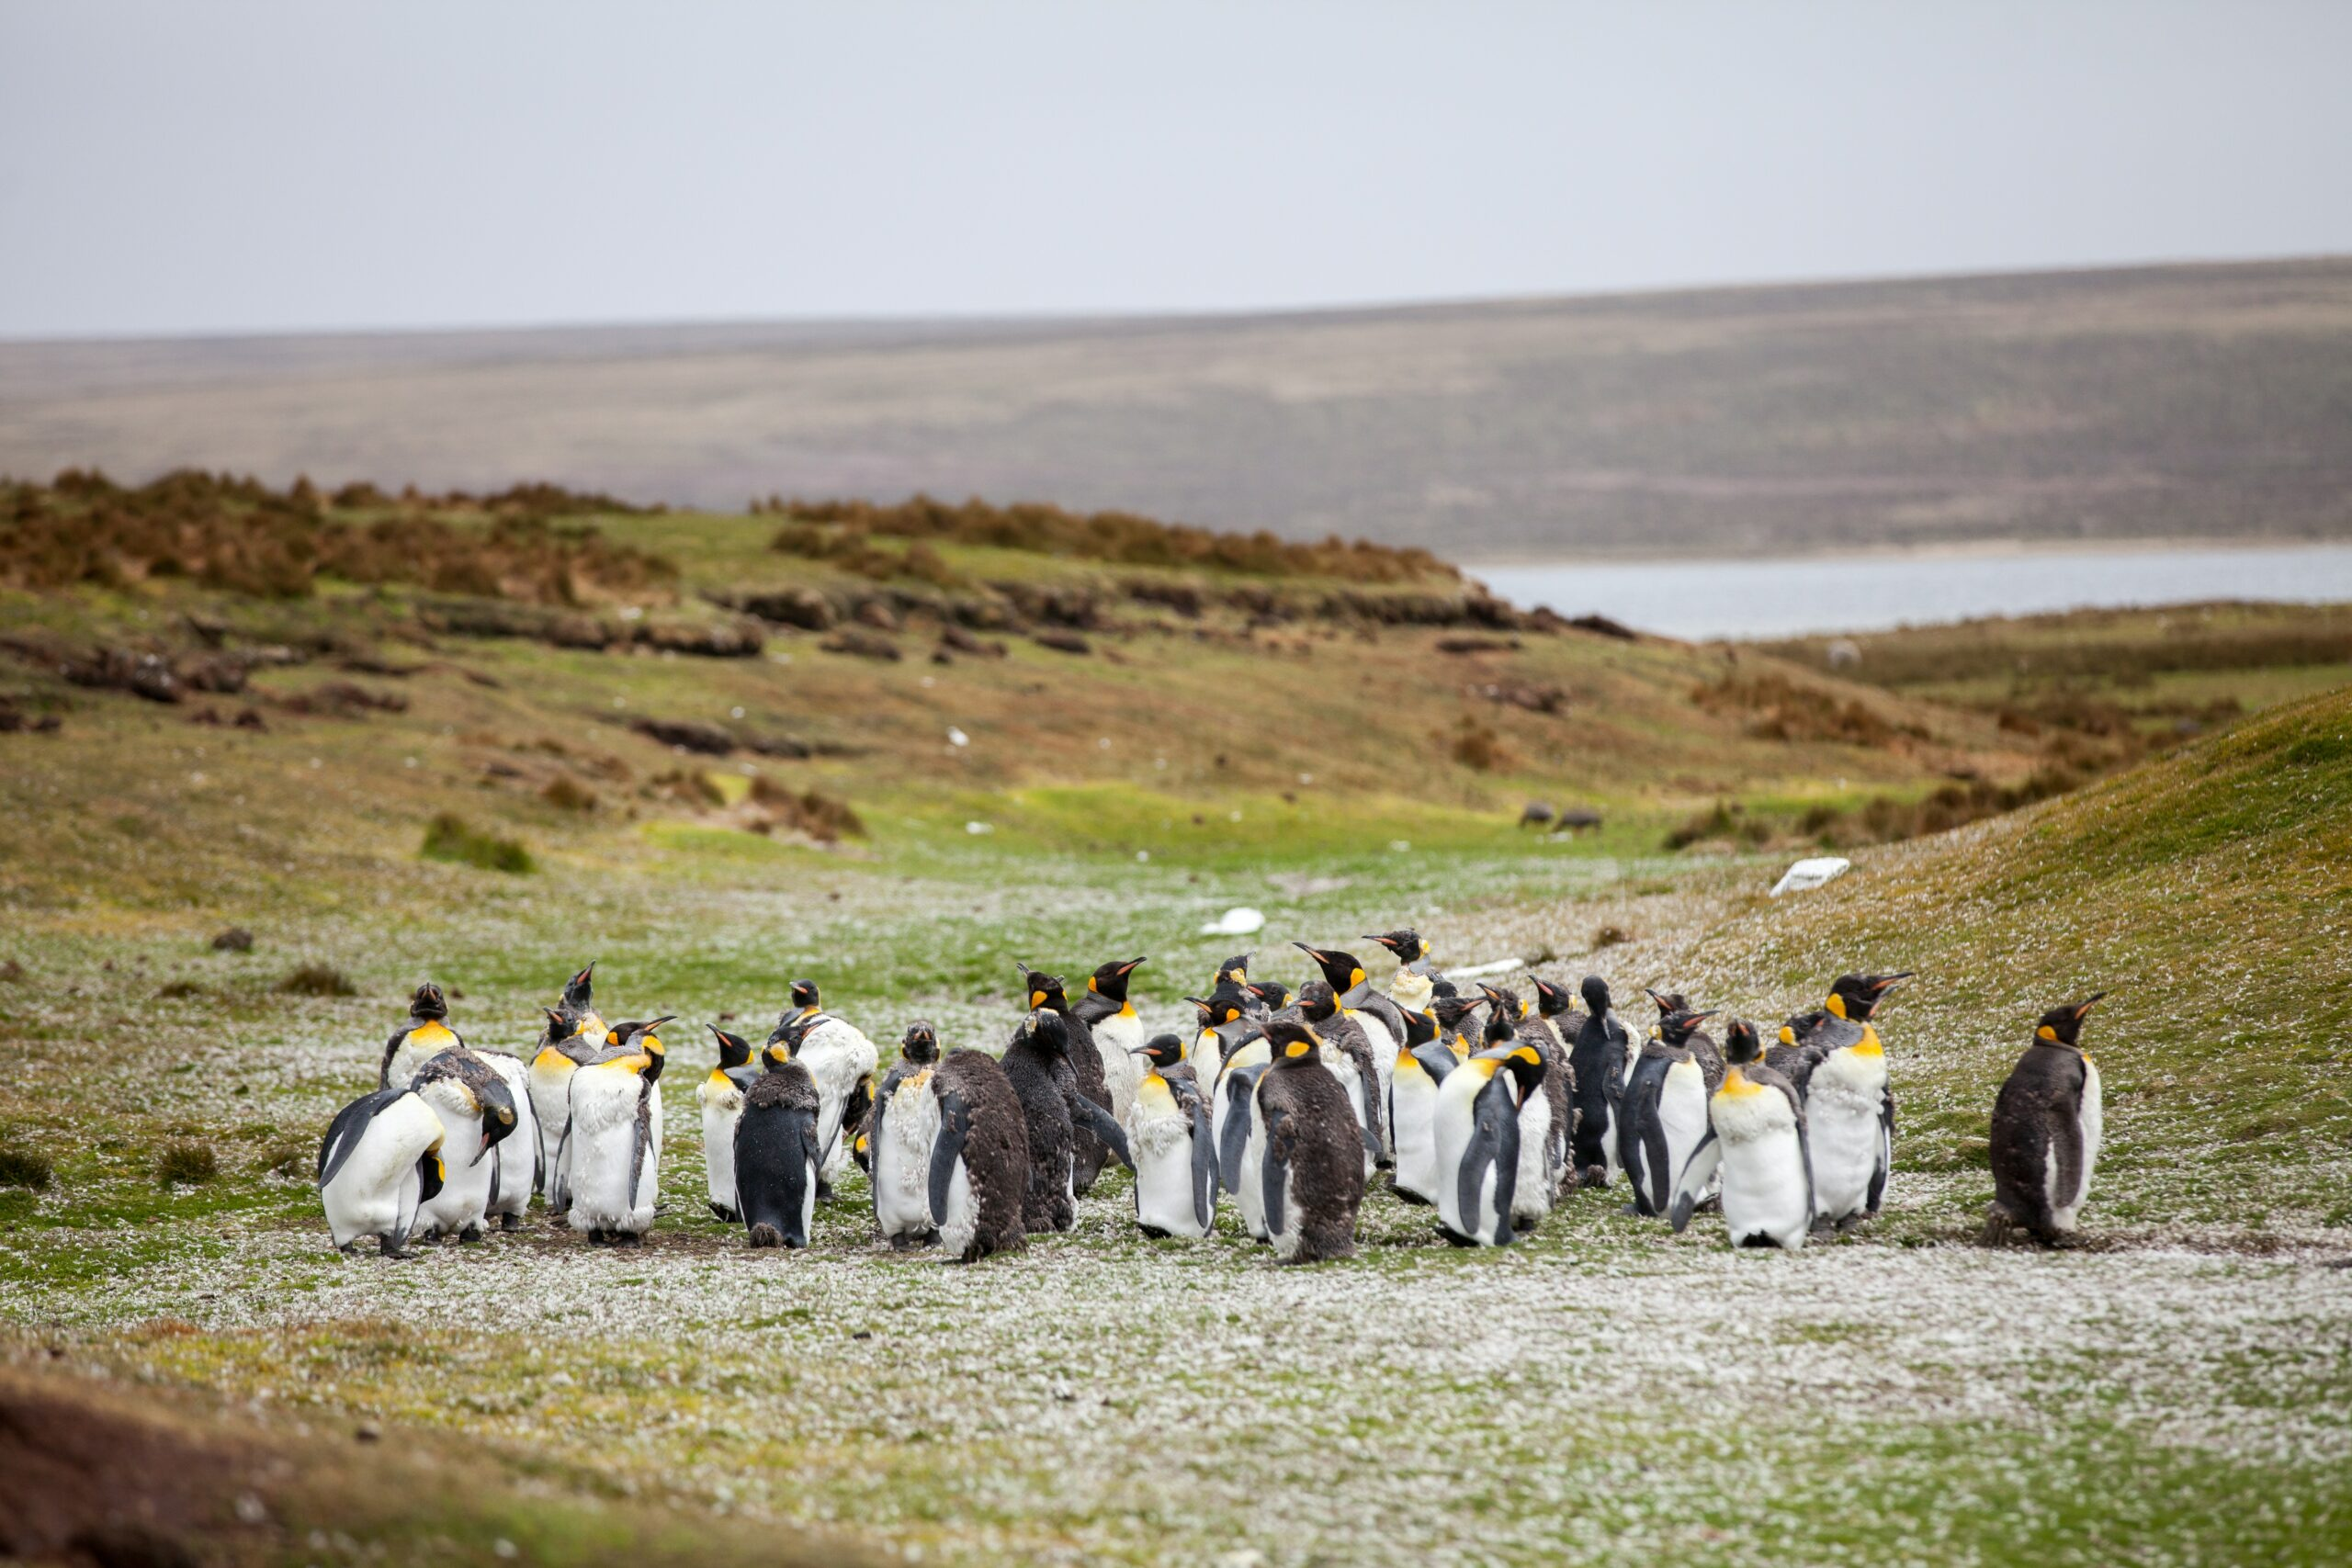 Group of emperor penguins on a green hill with a little snow and the ocean in the background